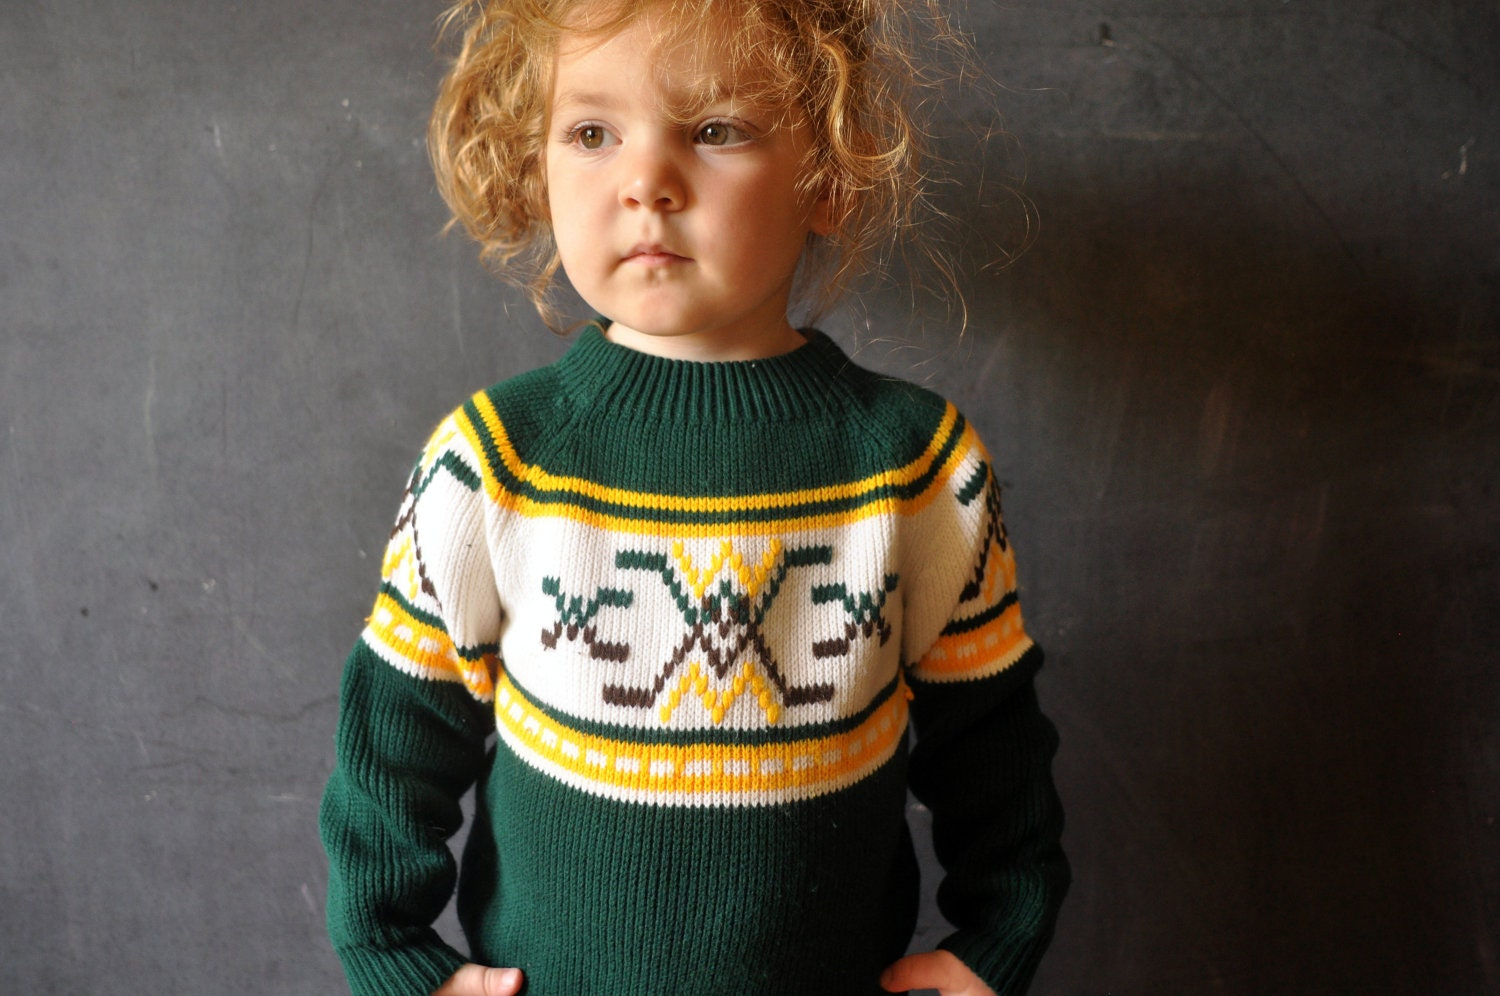 retro kids hockey sweater, green, white yellow and brown, size4-5, knit - LaDiDottie